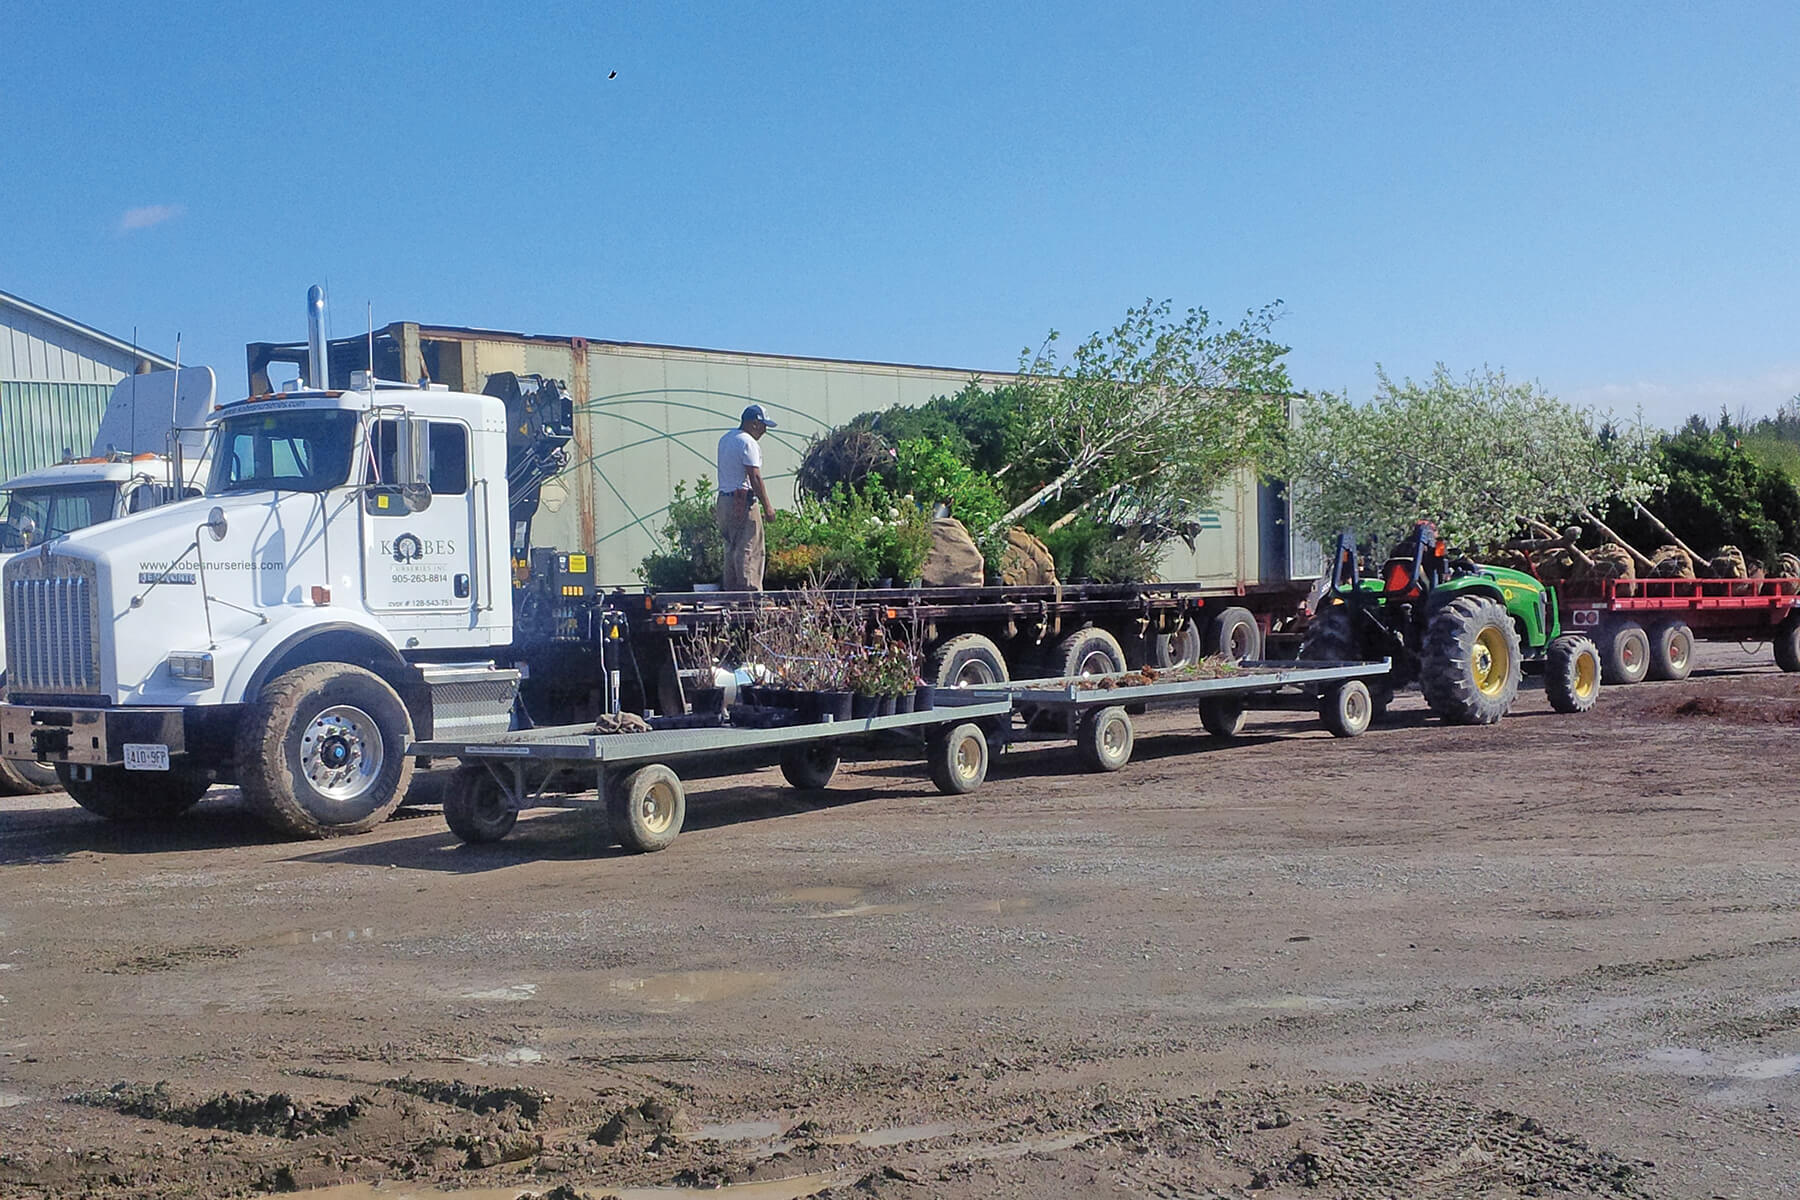 large flatbed truck loaded with trees